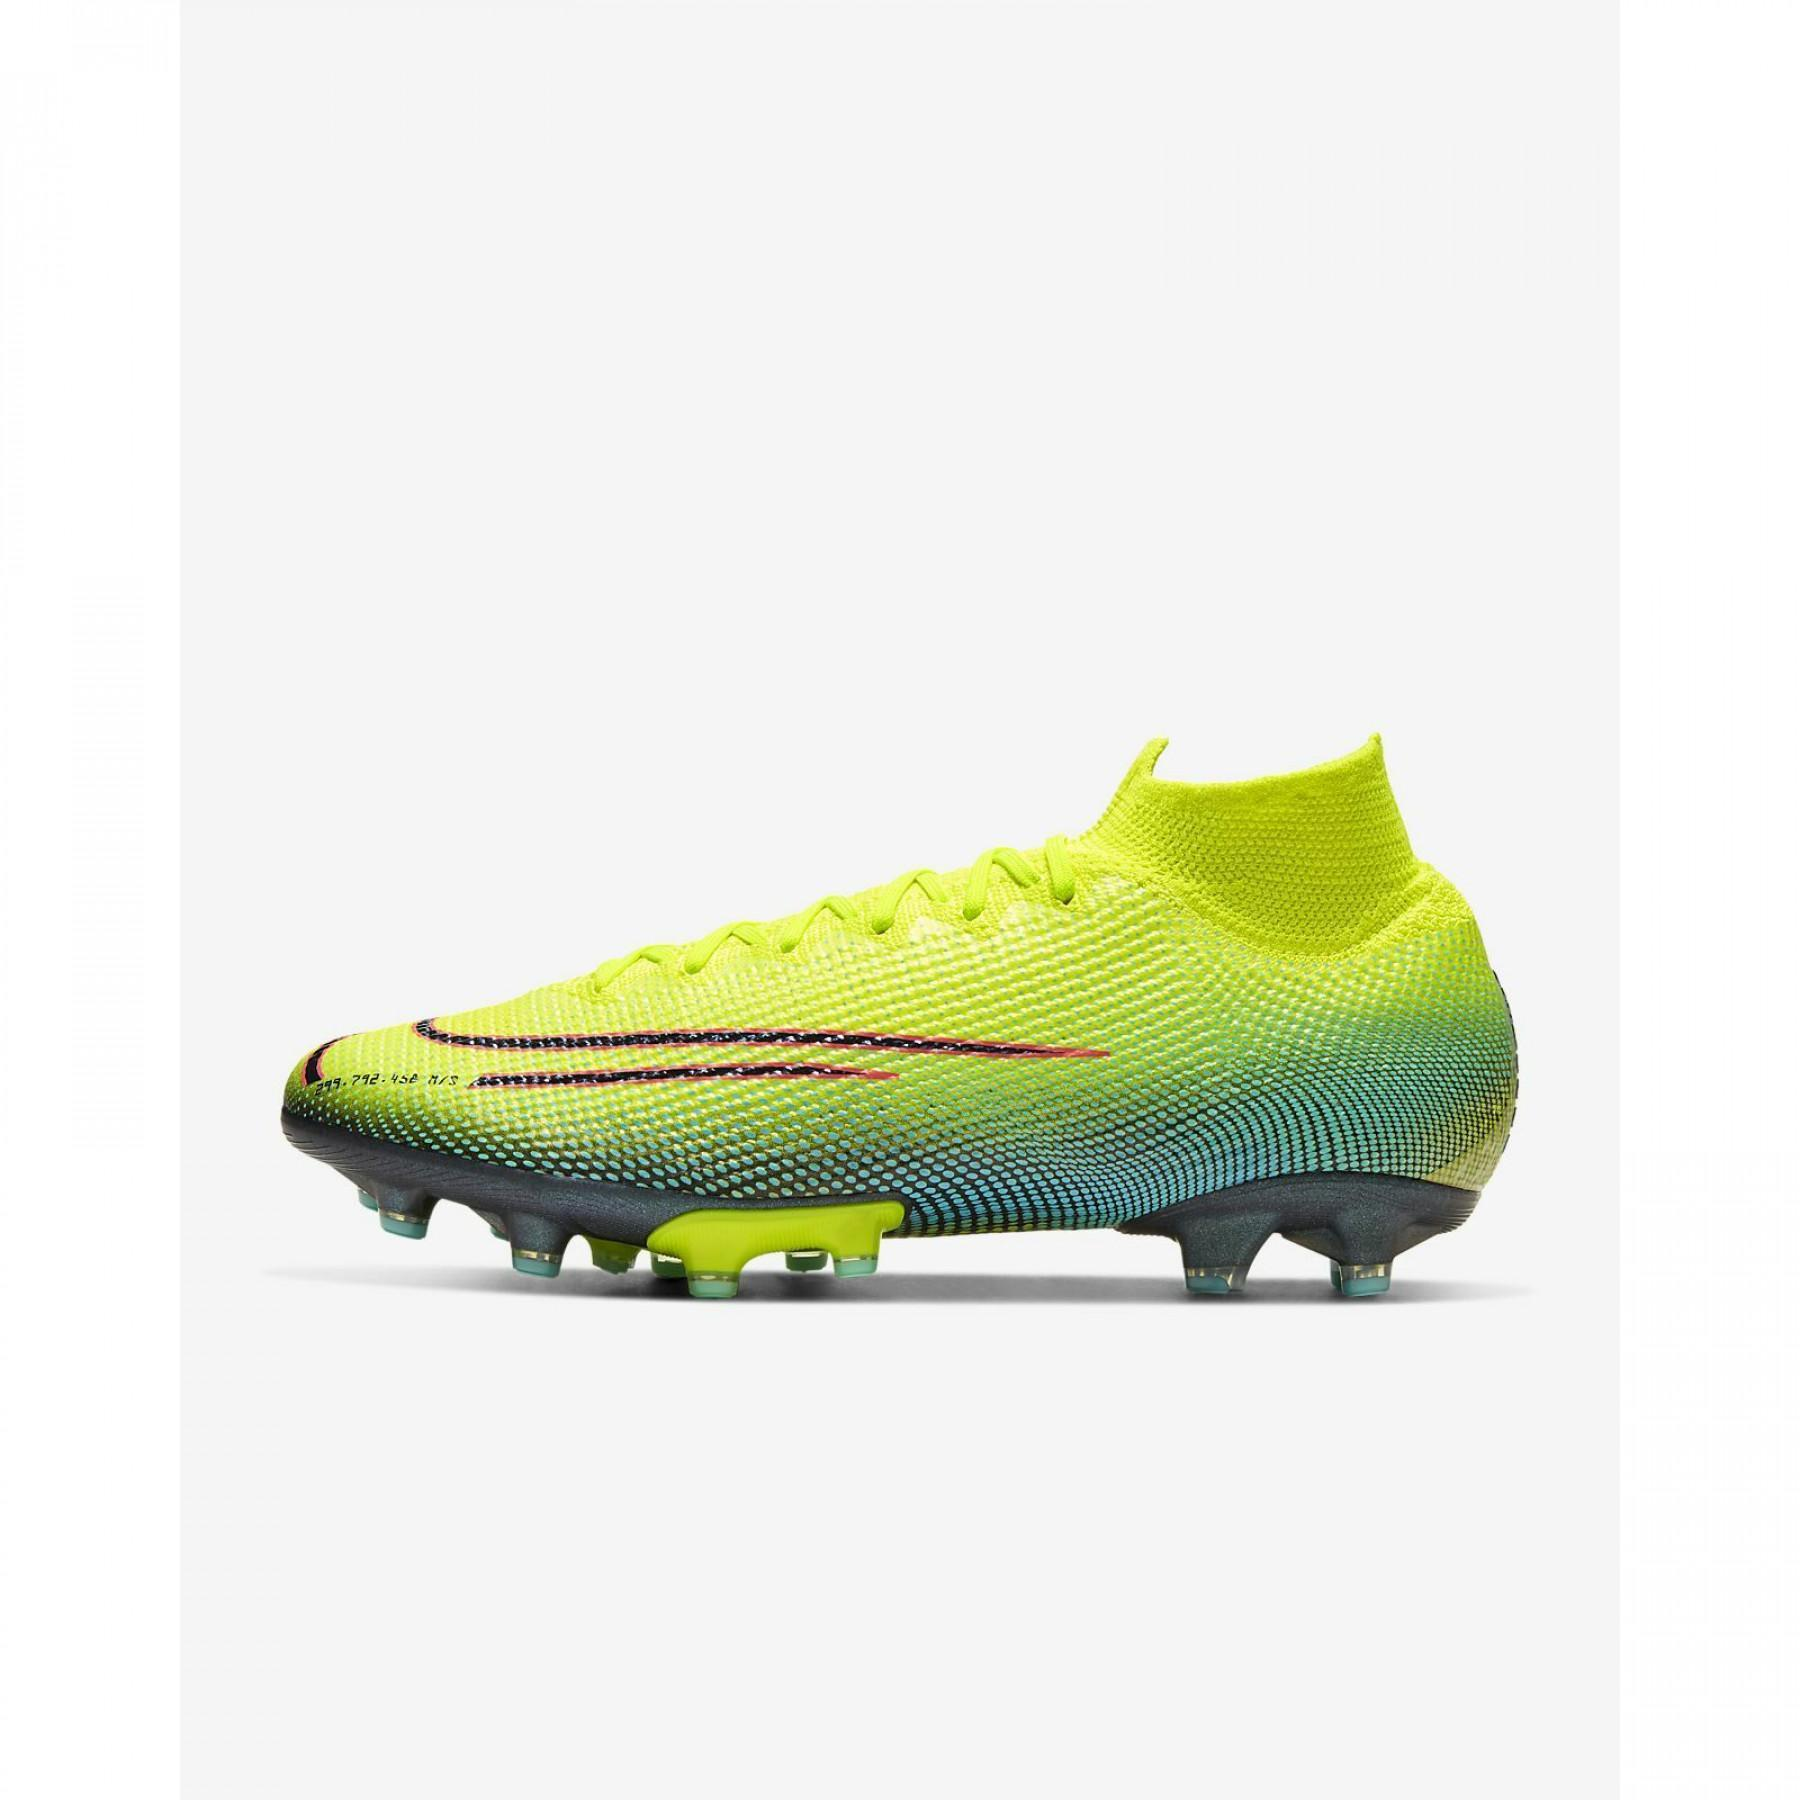 Chaussures Nike Mercurial Superfly 7 Elite MDS Pro AG